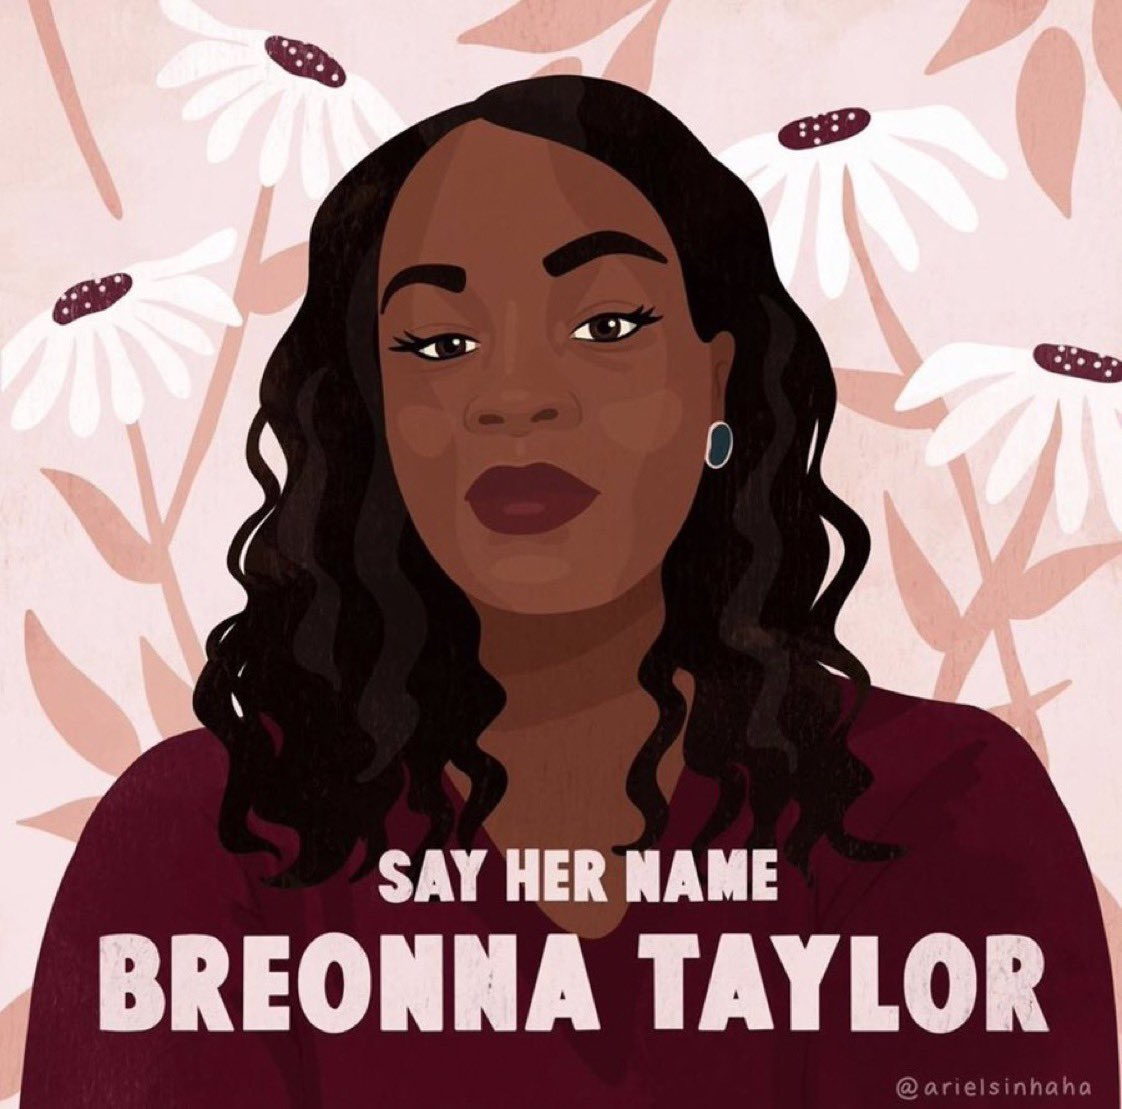 The day after her 27th birthday, don't stop...#SayHerName. #BreonnaTaylor #BreonnaTaylor #BreonnaTaylor #BreonnaTaylor #BreonnaTaylor #BreonnaTaylor #BreonnaTaylor #BreonnaTaylor @GovAndyBeshear @louisvillemayor @LMPD: #JusticeForBreonna